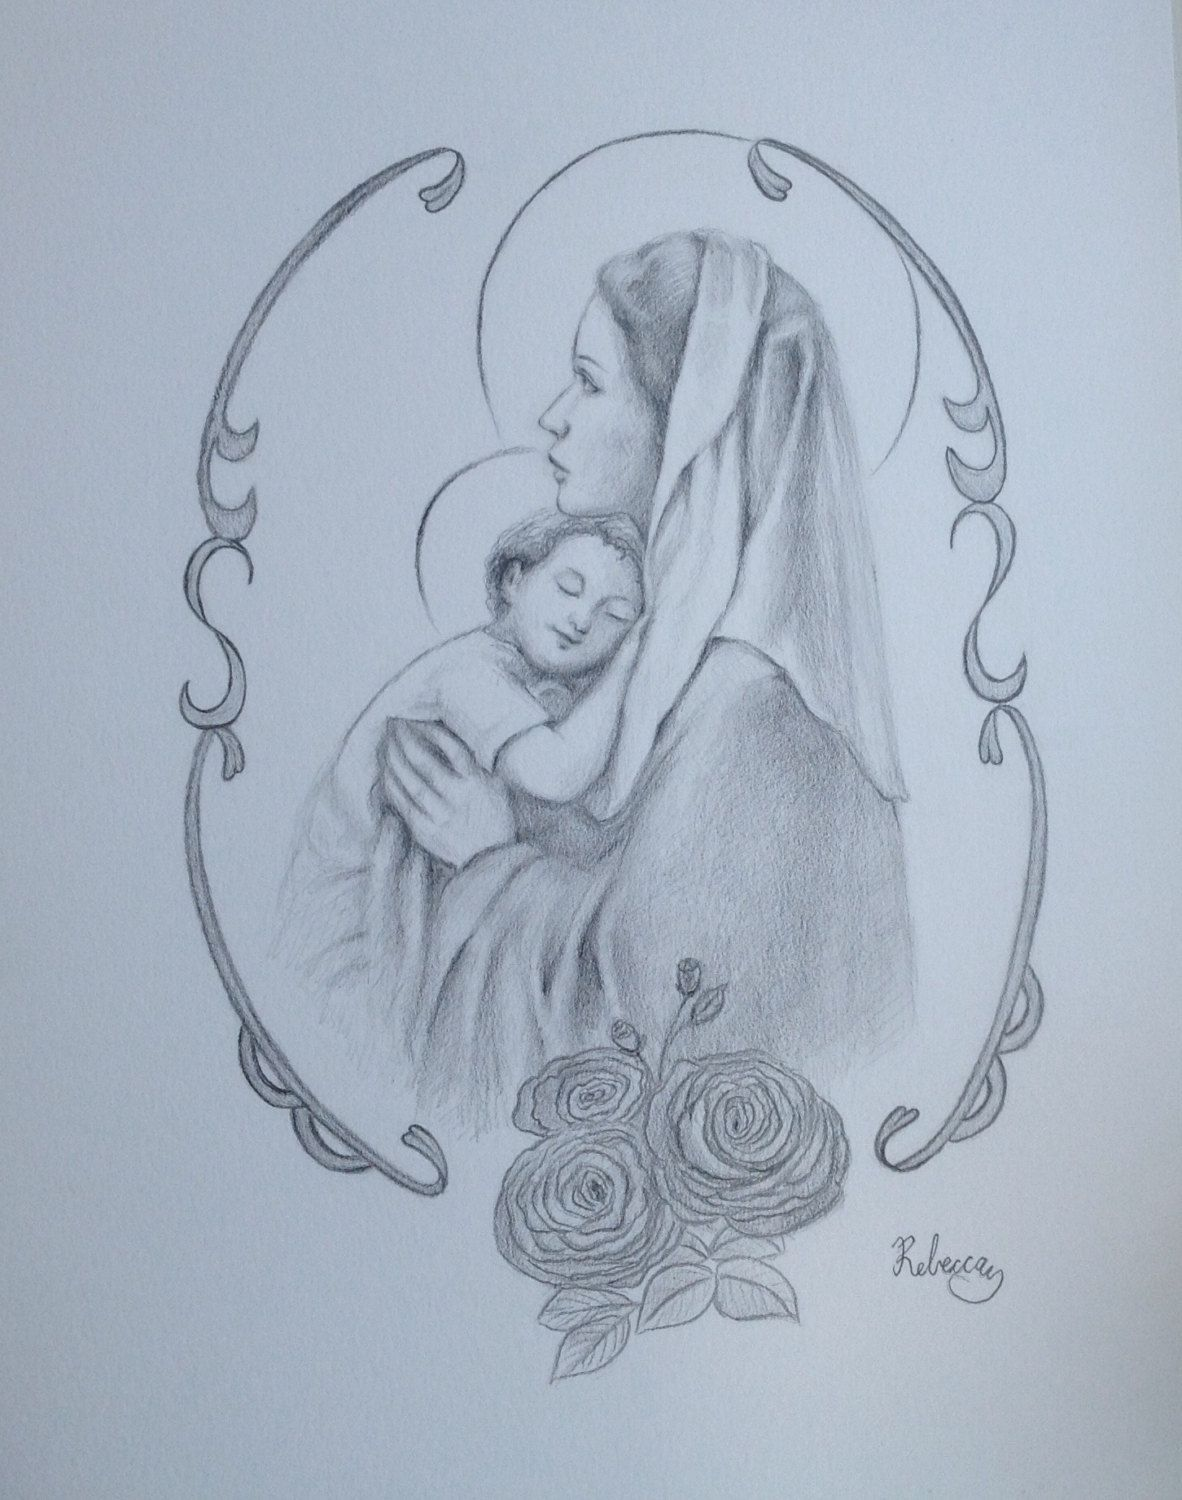 Jesus pictures pictures to draw pictures images divine mother mother mary